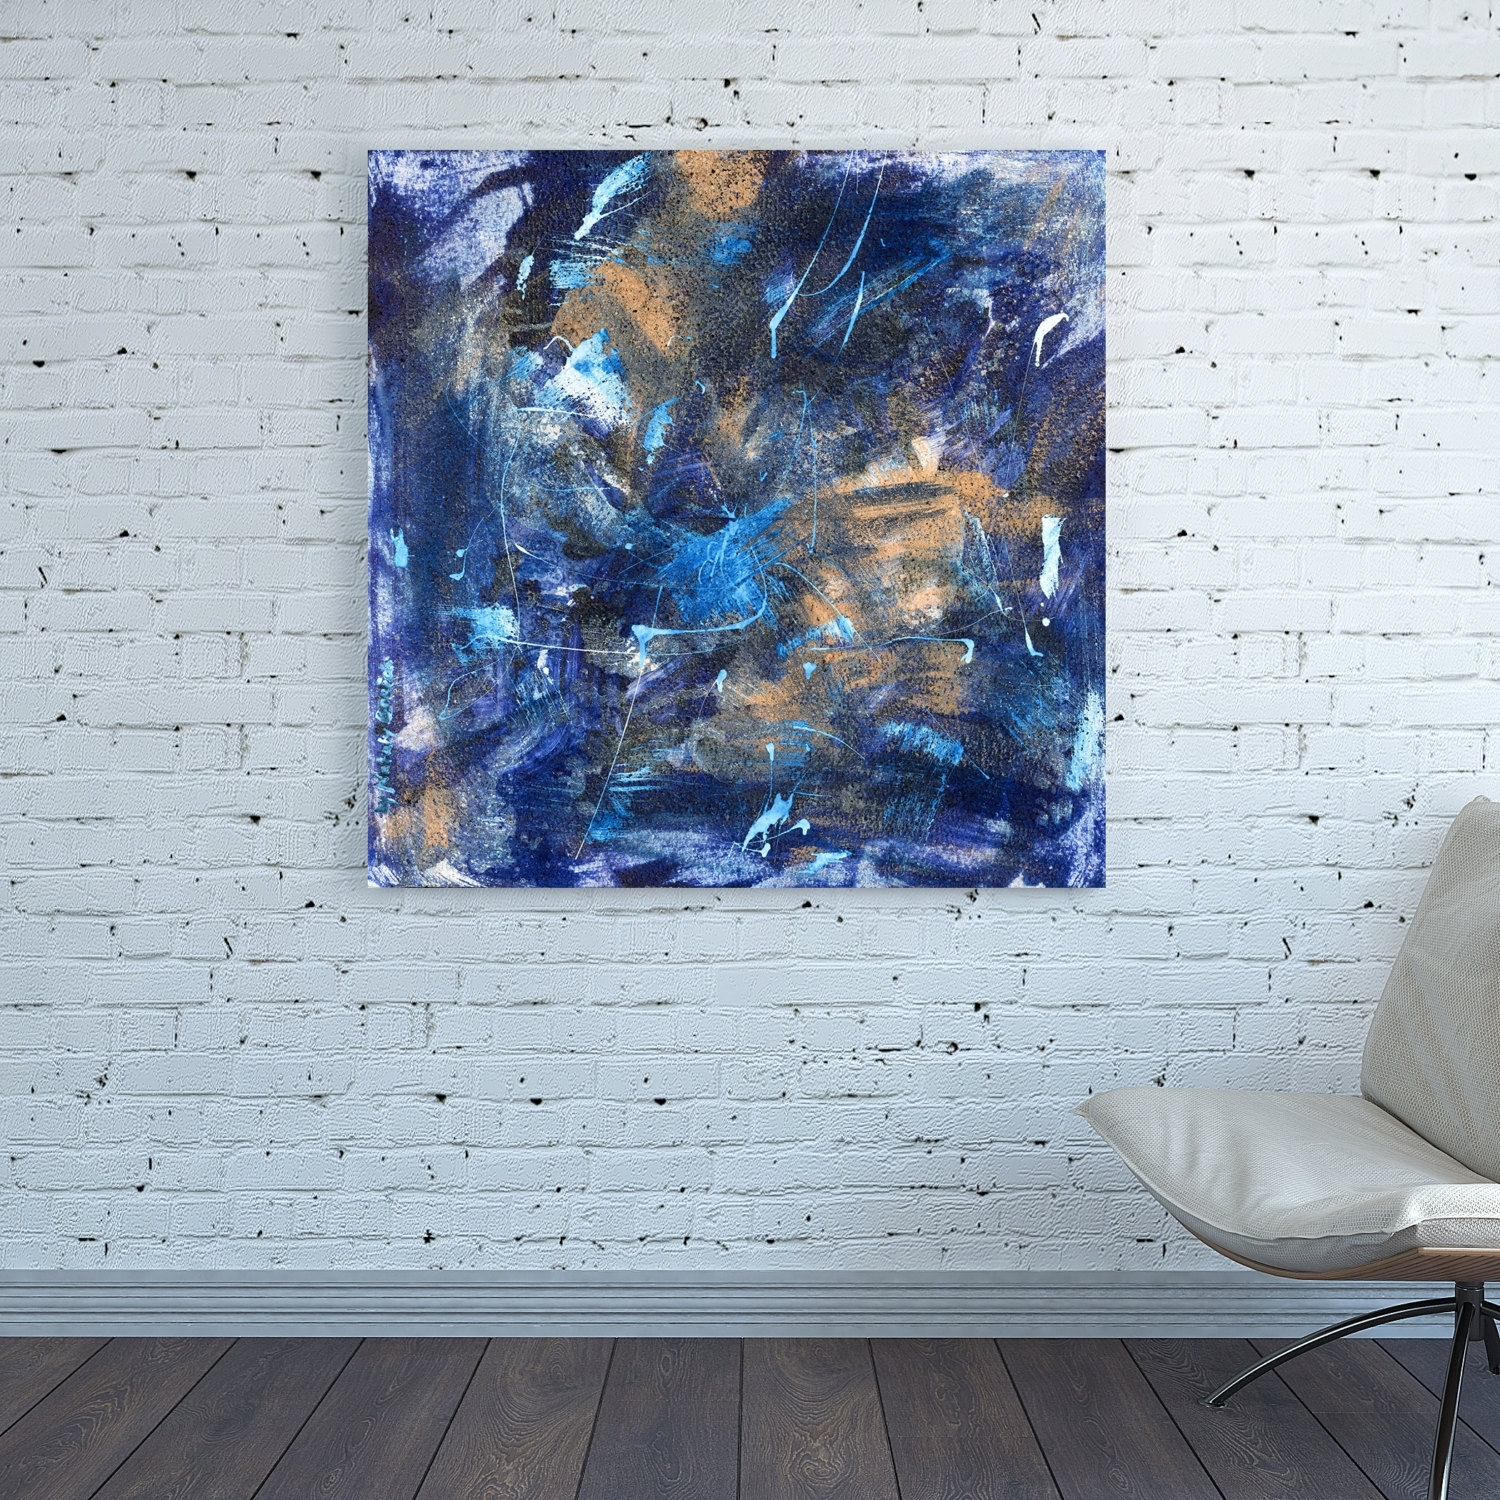 Canvas Print Dark Blue Abstract Wall Art Square Blue Colorful Regarding Most Current Dark Blue Abstract Wall Art (View 4 of 20)